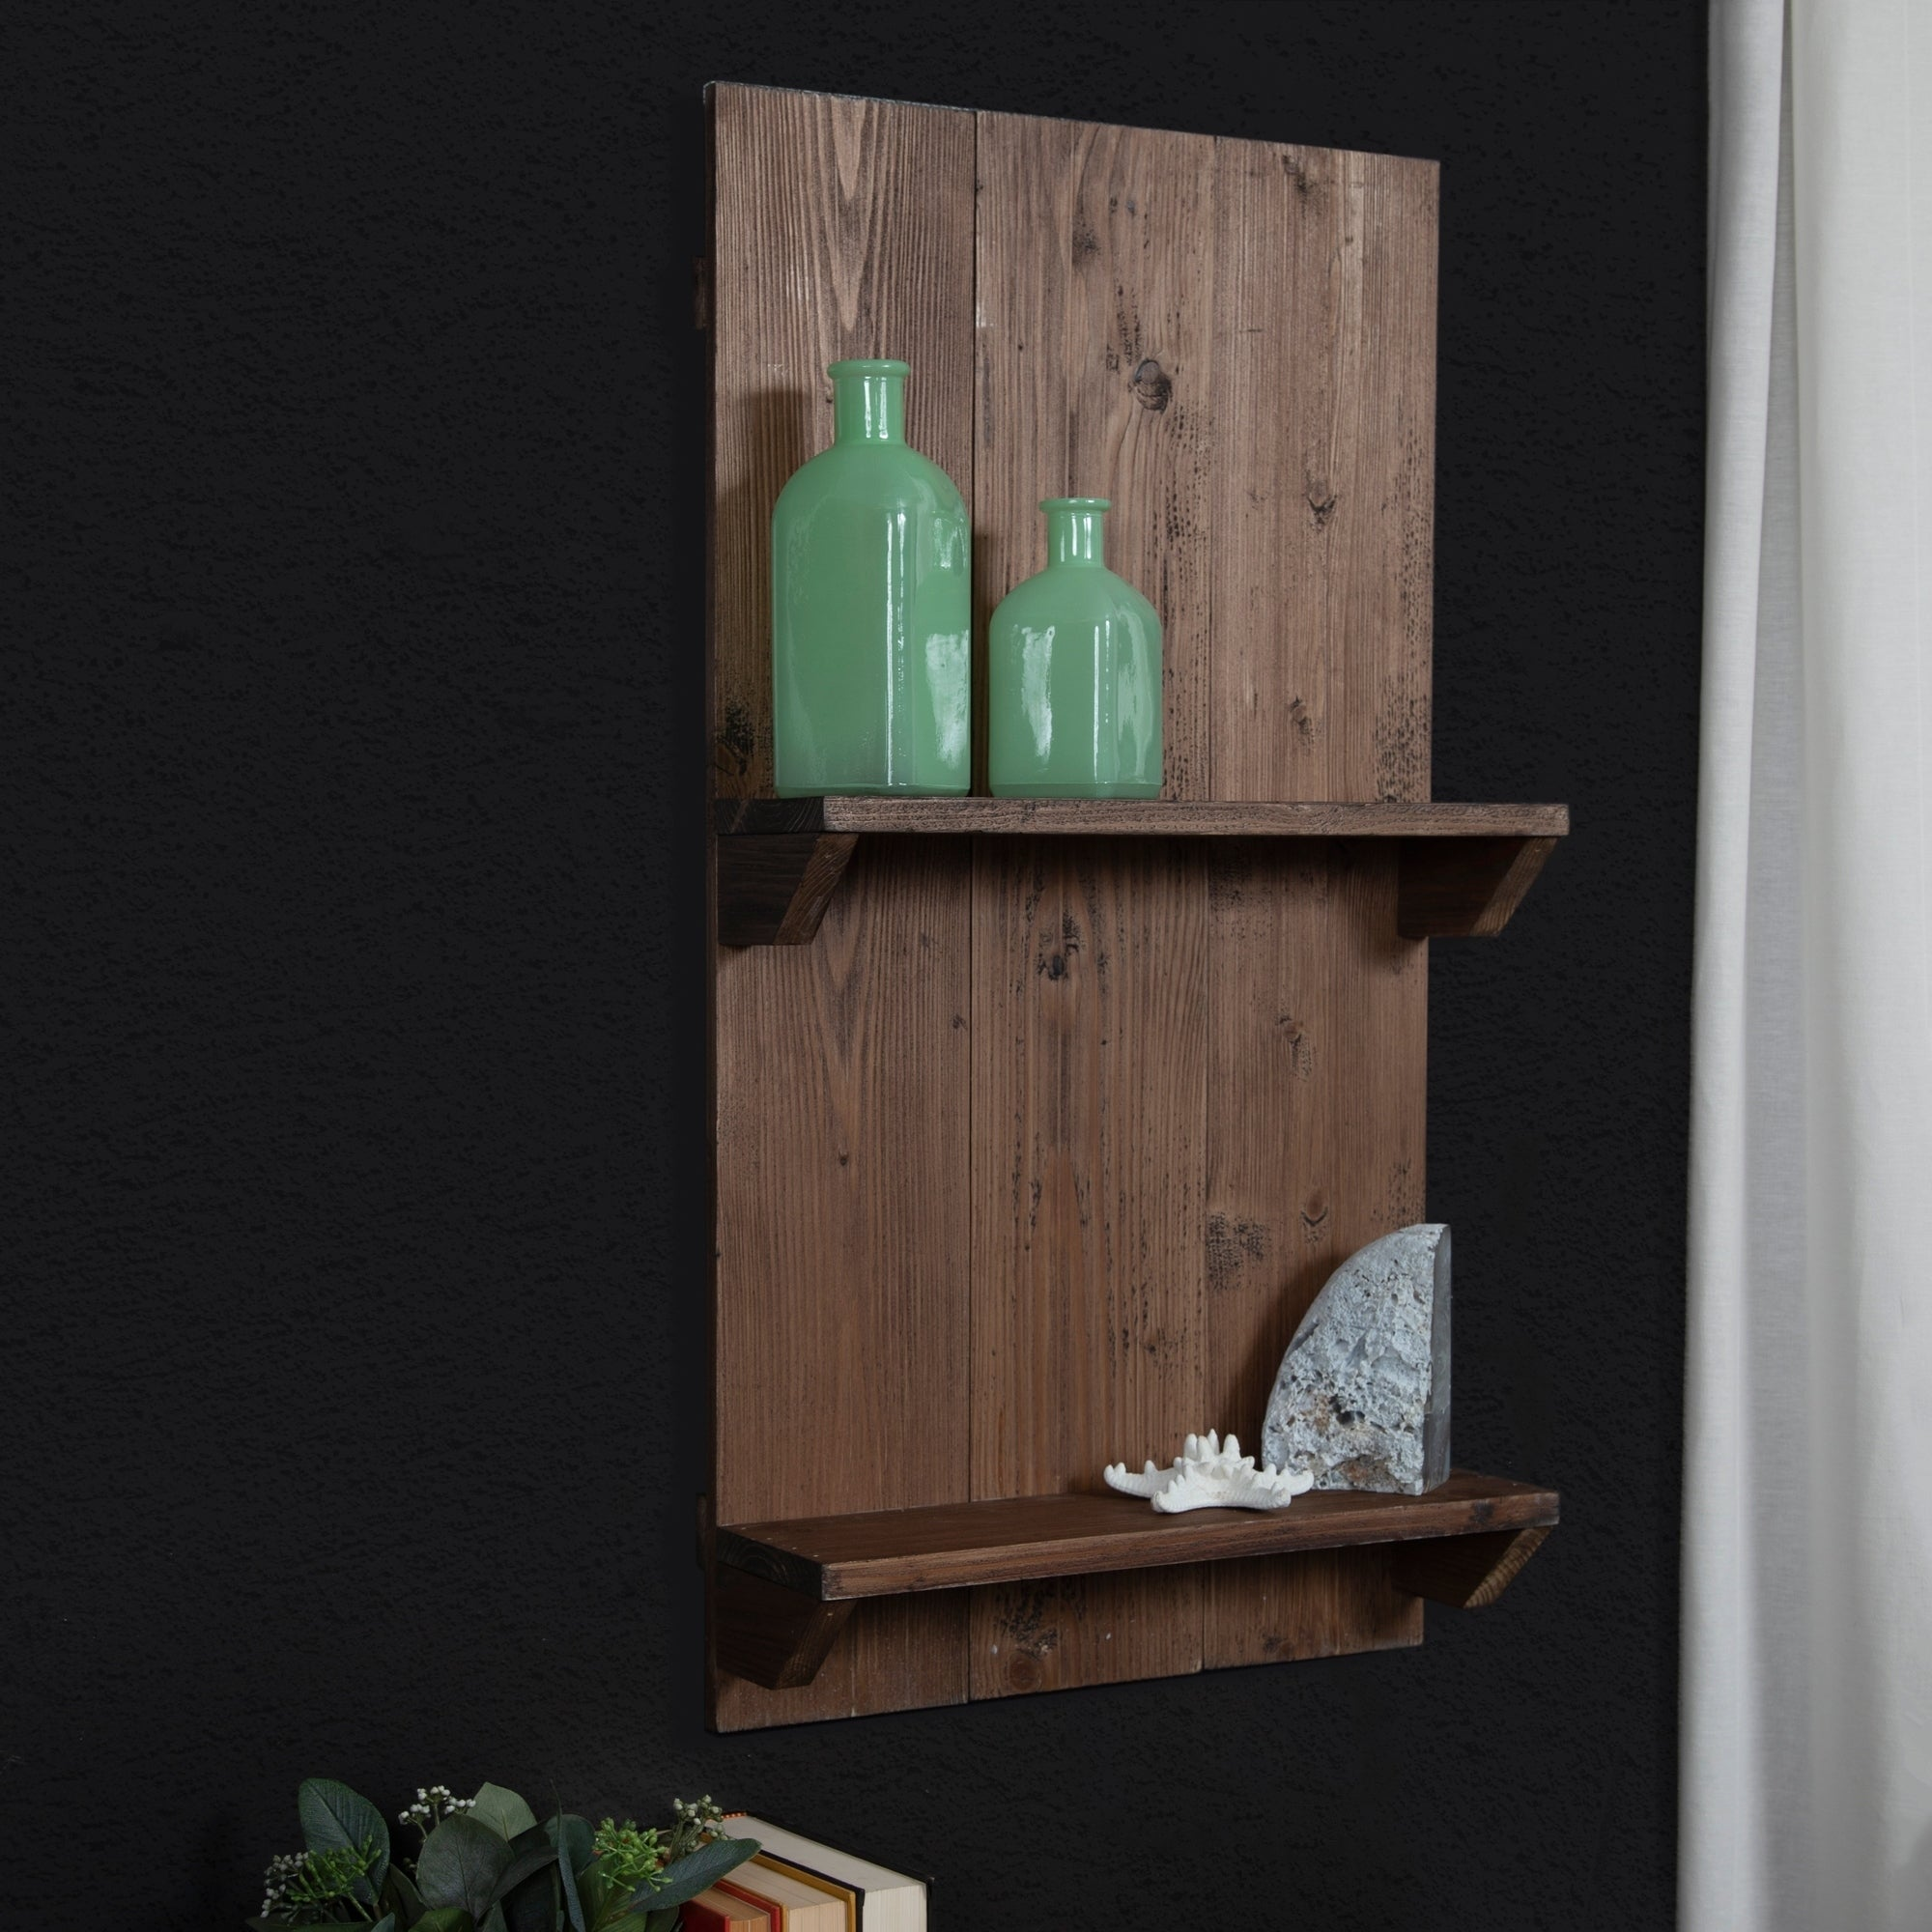 Shop Gallery Solutions Rustic Wood Pallet Wall Shelf Overstock 24214416